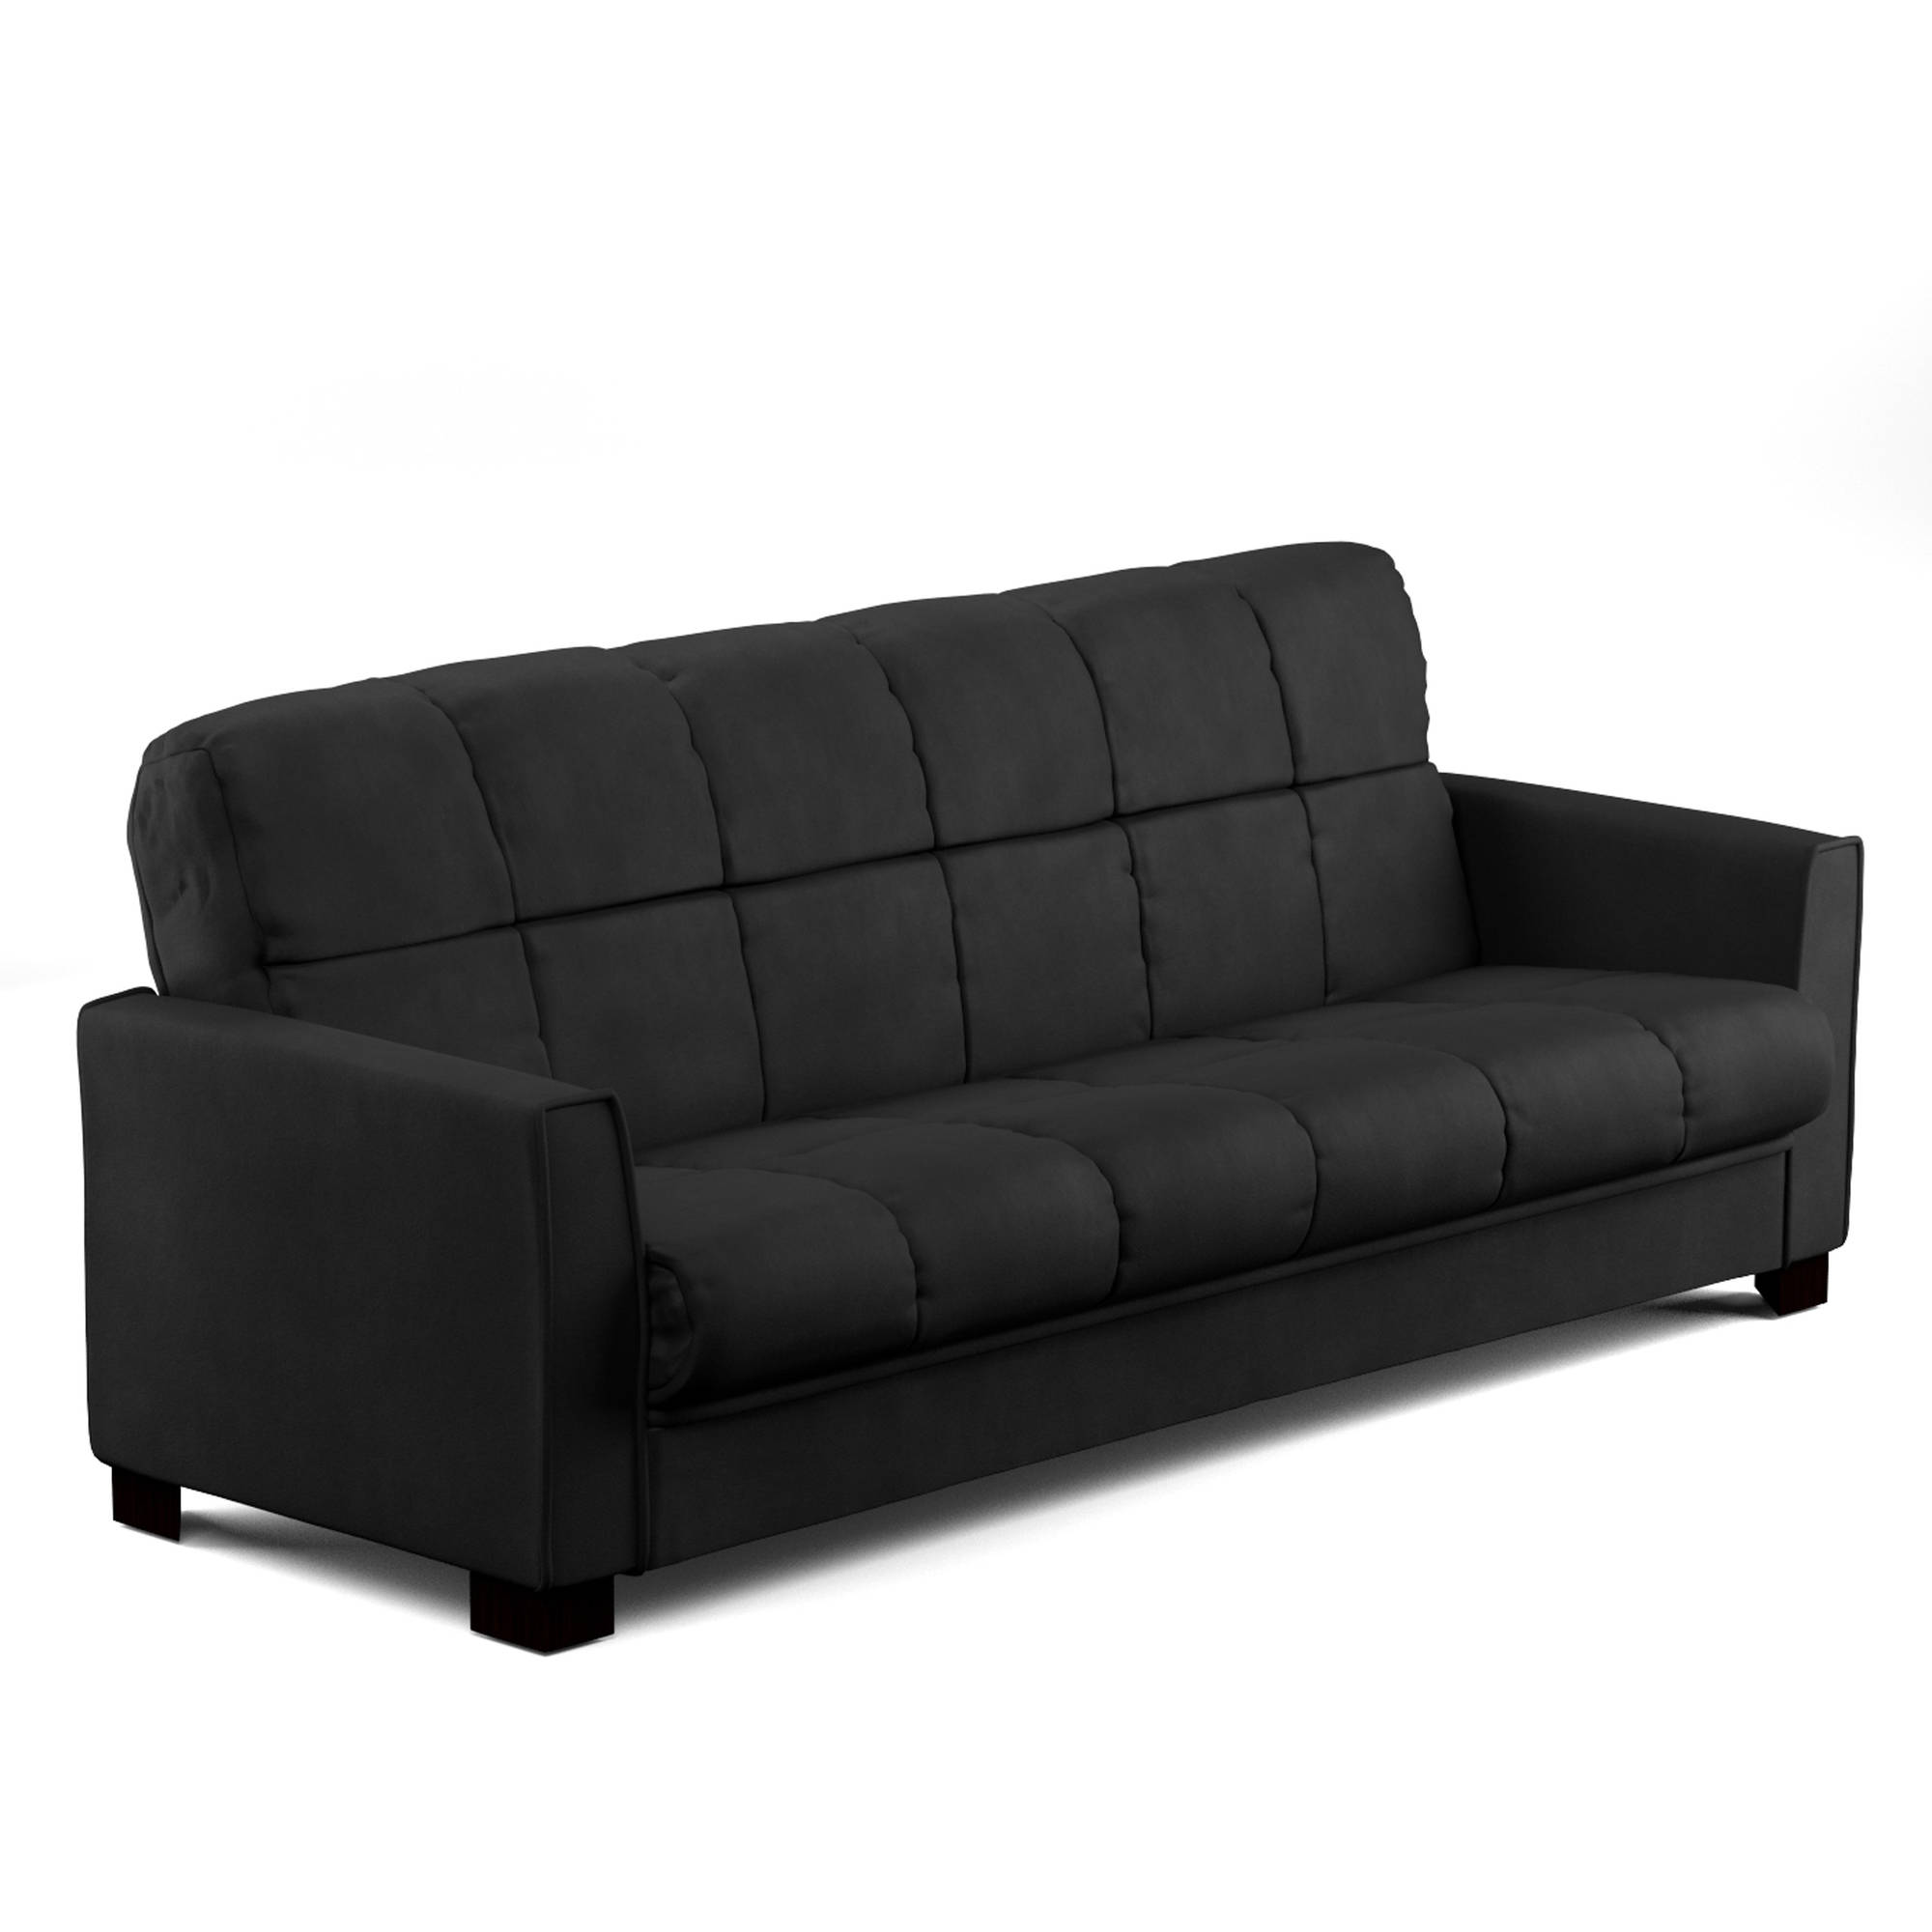 Sofas Couches Couch Home